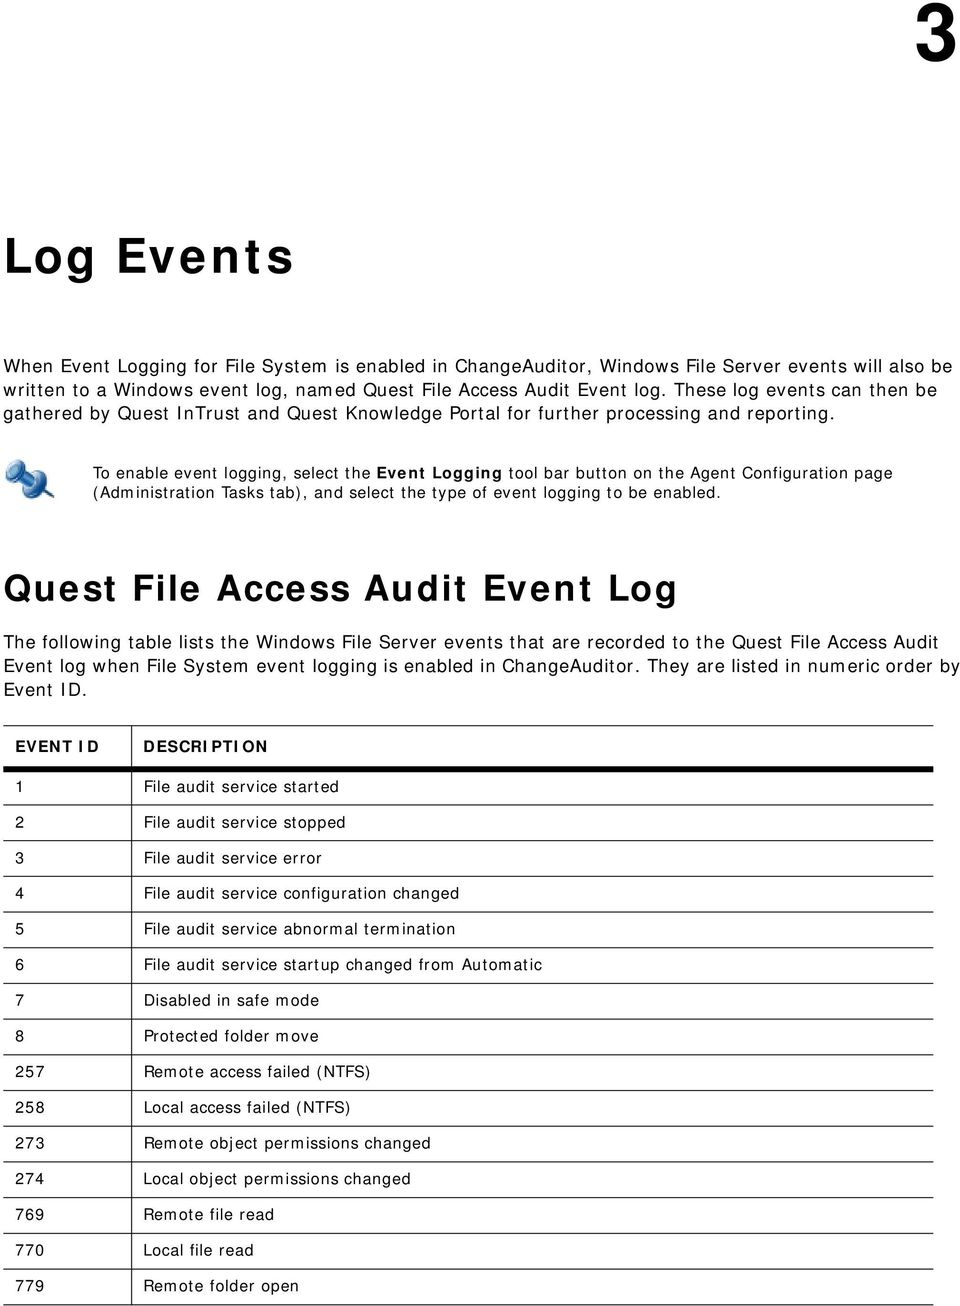 To enable event logging, select the Event Logging tool bar button on the Agent Configuration page (Administration Tasks tab), and select the type of event logging to be enabled.